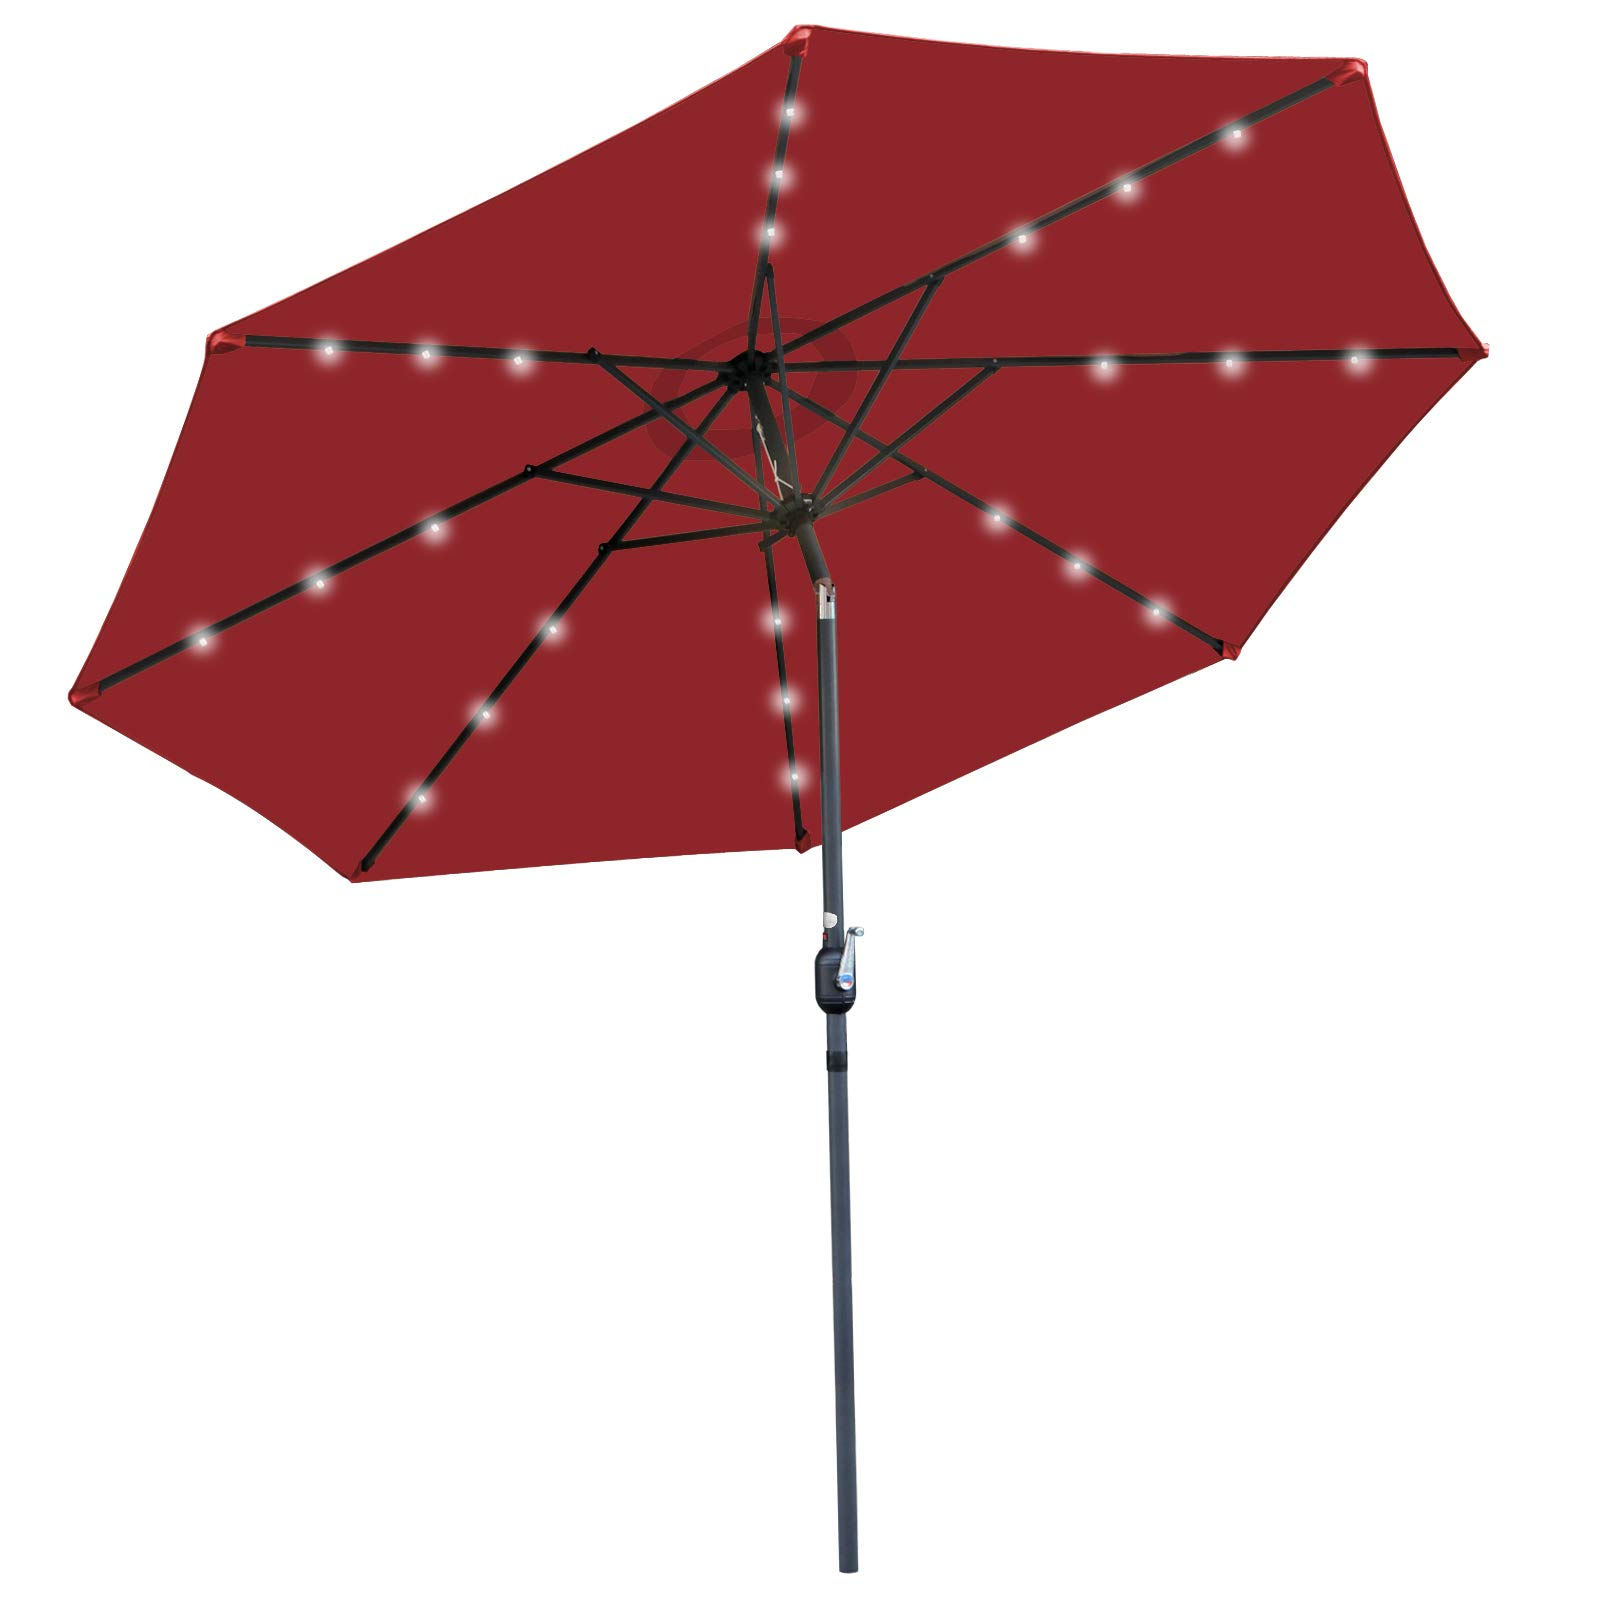 Nova Microdermabrasion 10 ft Solar LED Lighted Patio Outdoor Umbrella with Tilt Adjustment and Crank Lift, Perfect for Patio, Garden, Backyard, Deck, Poolside, Balcony and Beach (Burgundy Red)